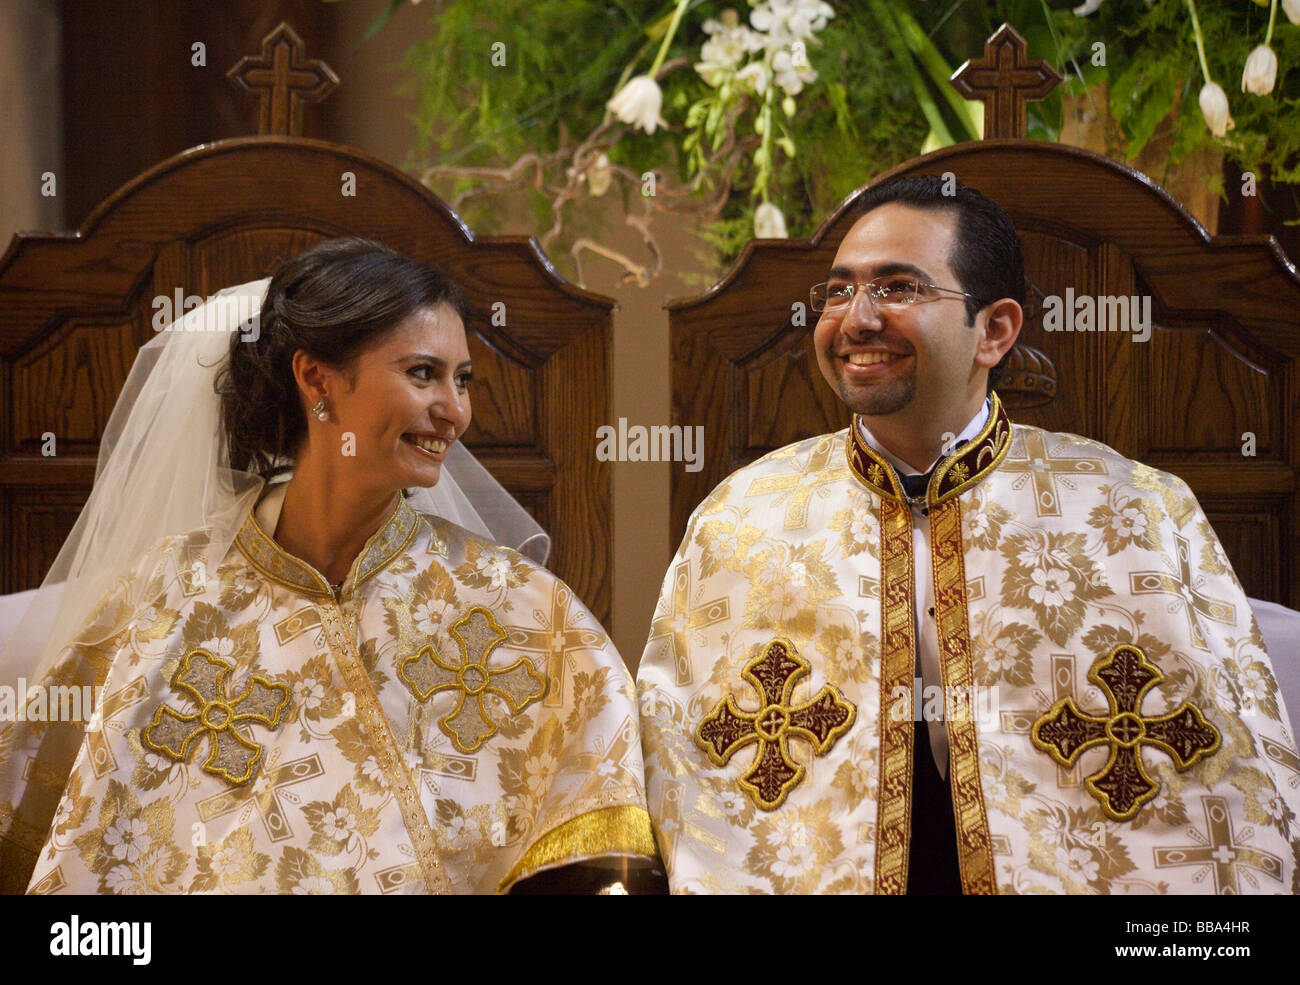 bride and groom at Coptic wedding in Cairo, Egypt - Stock Image